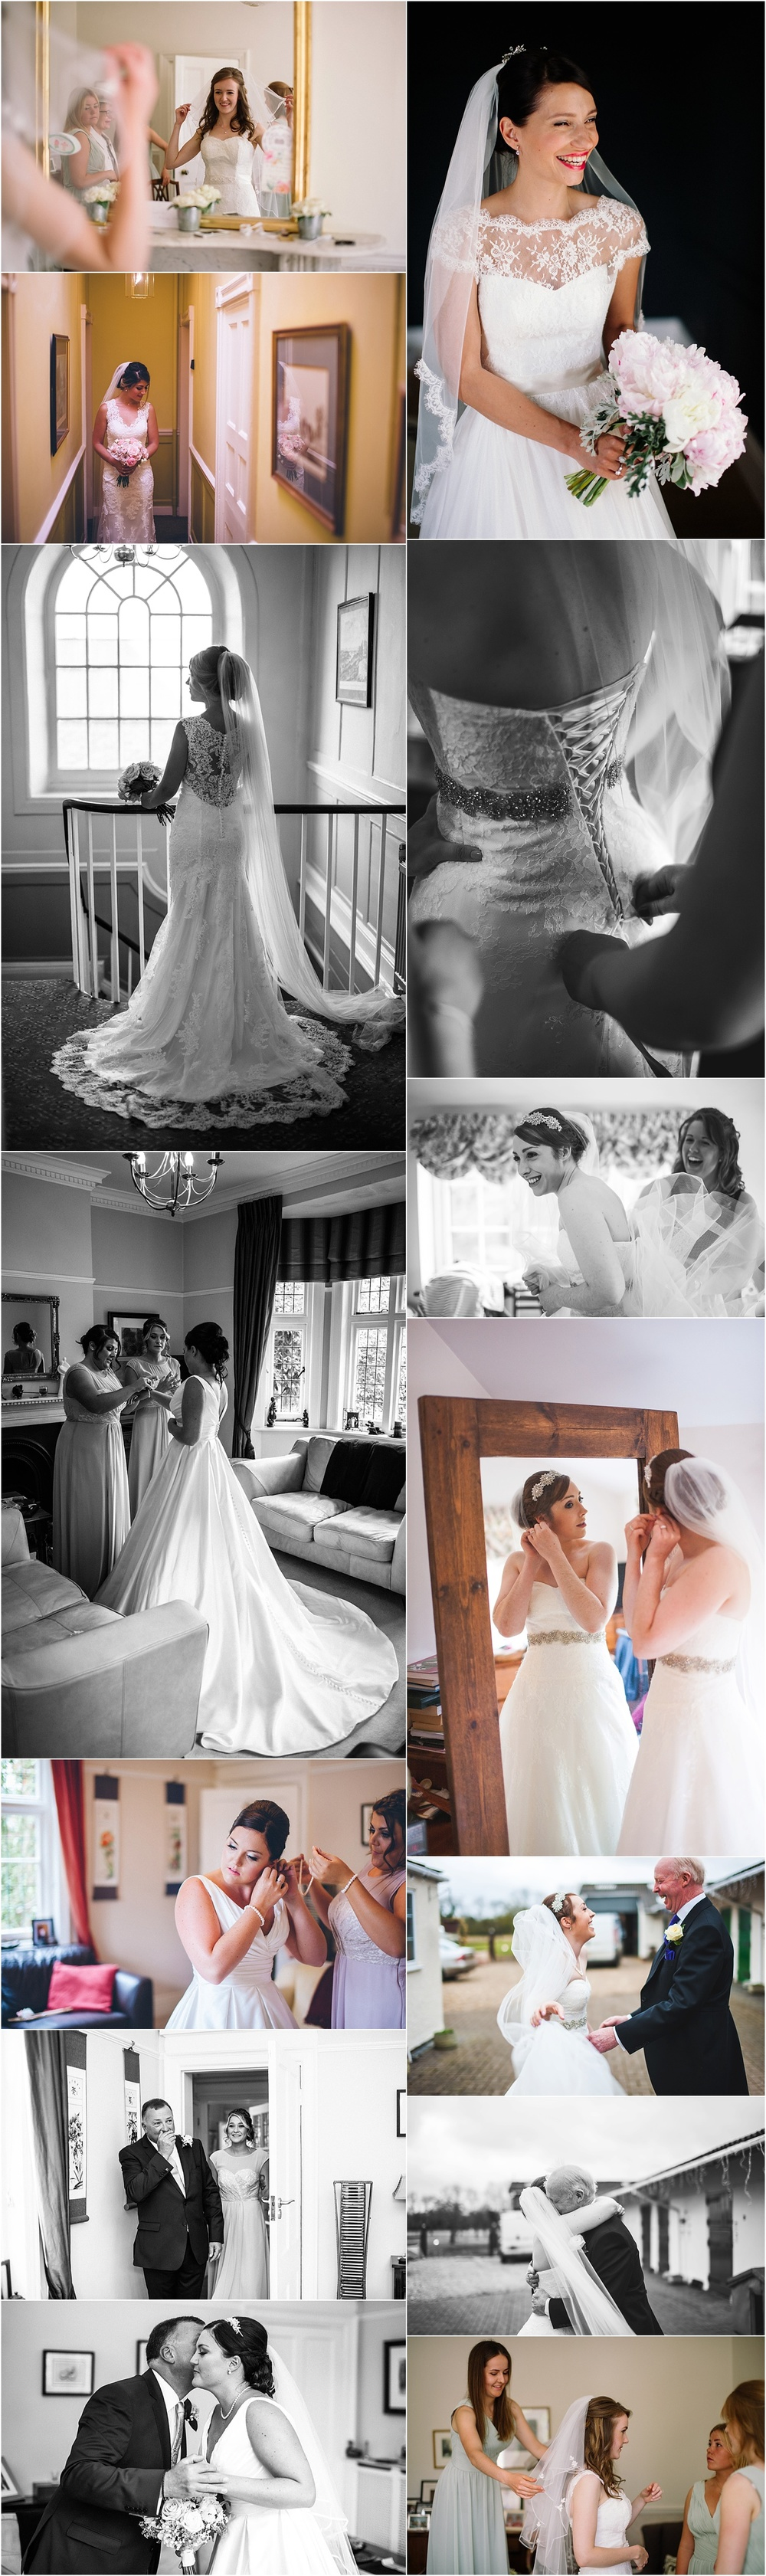 bridal preparation, national wedding photographer, kent, london, essex, surrey, sussex, uk